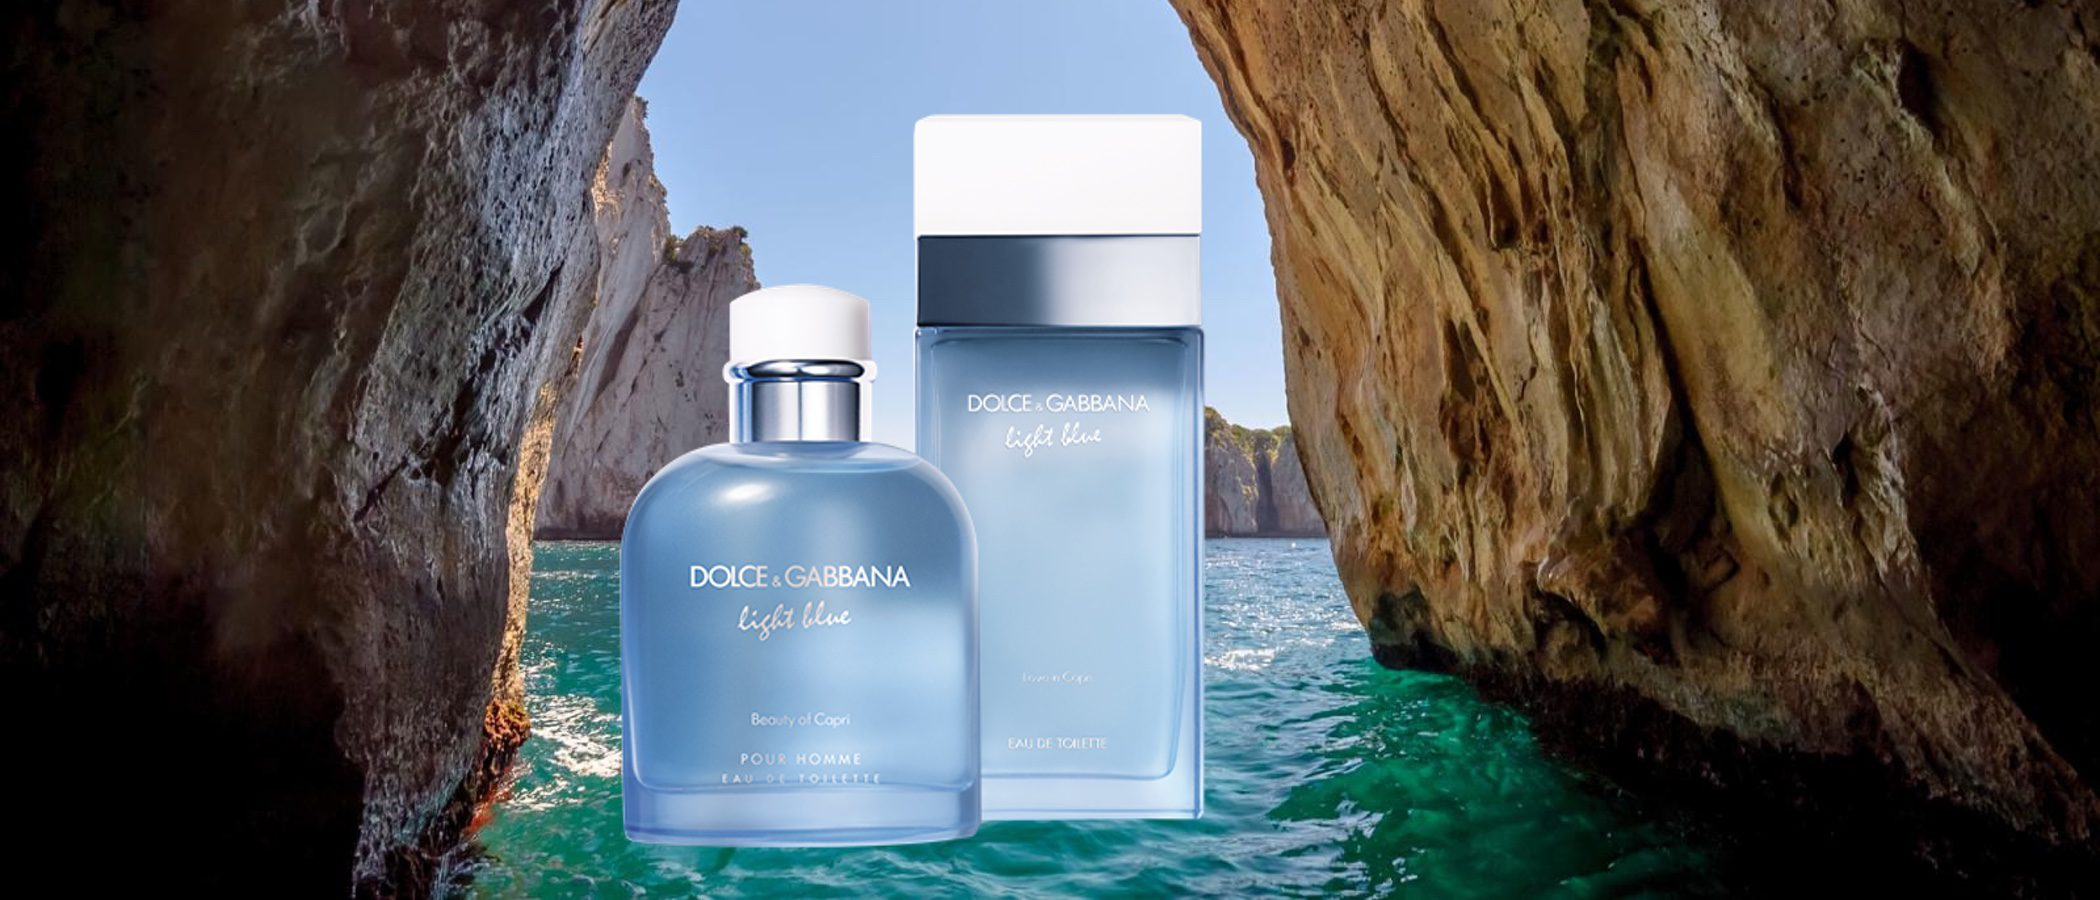 'Love in Capri' y 'Beauty of Capri', las fragancias limitadas de Dolce & Gabbana para este verano